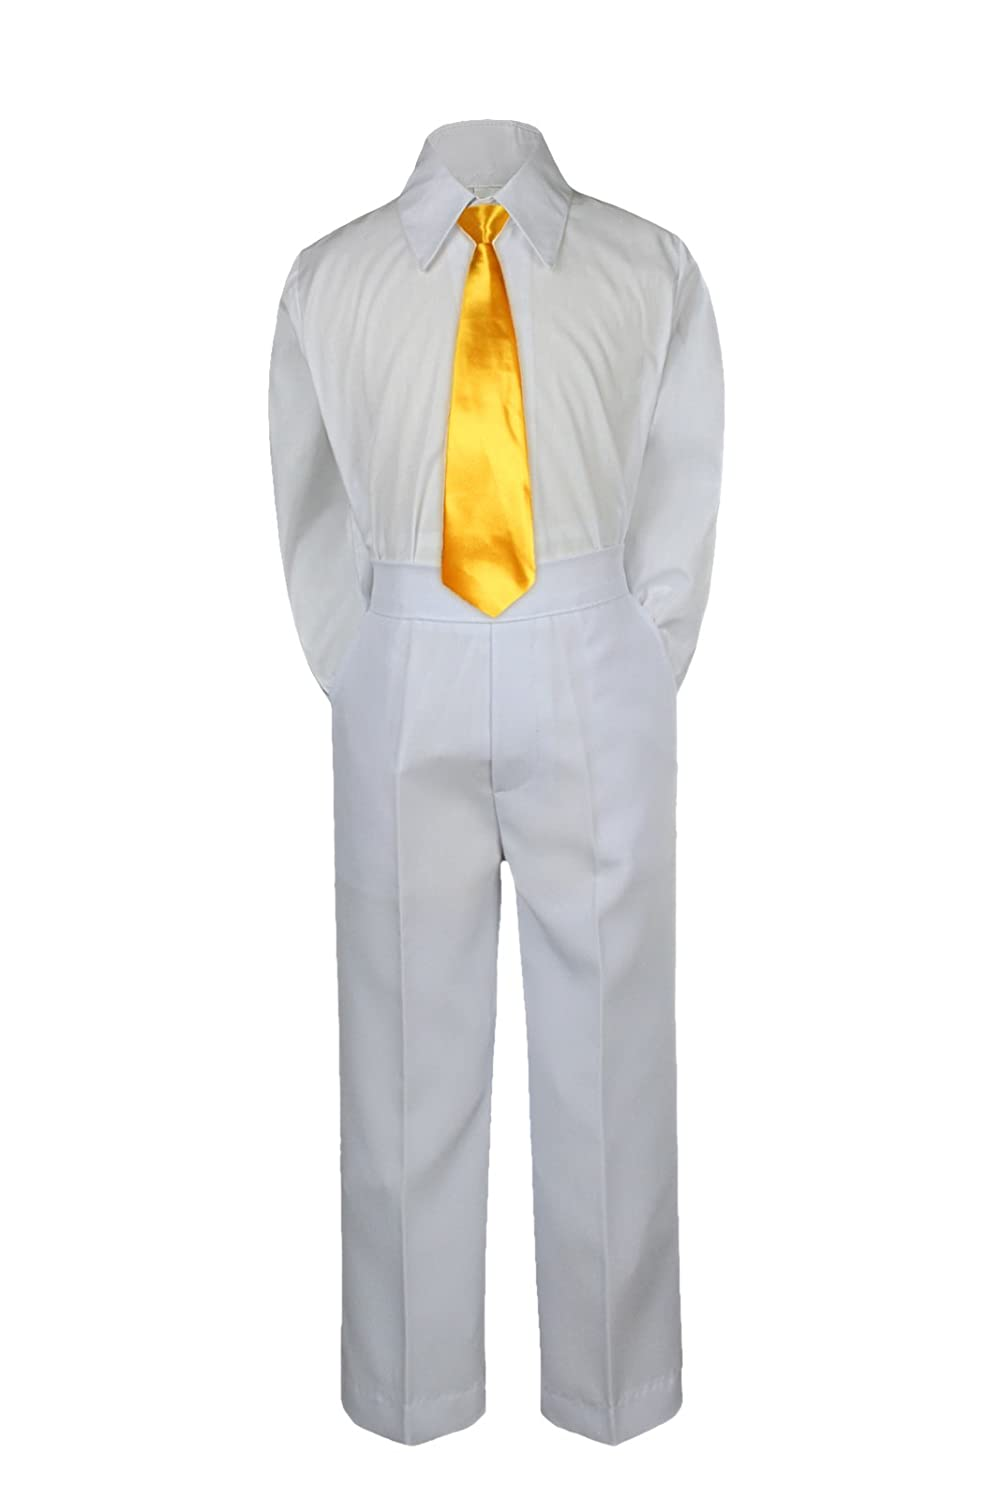 M: 6-12 months Leadertux 3pc Formal Baby Toddler Boys Satin Yellow Necktie White Pants Suit S-7